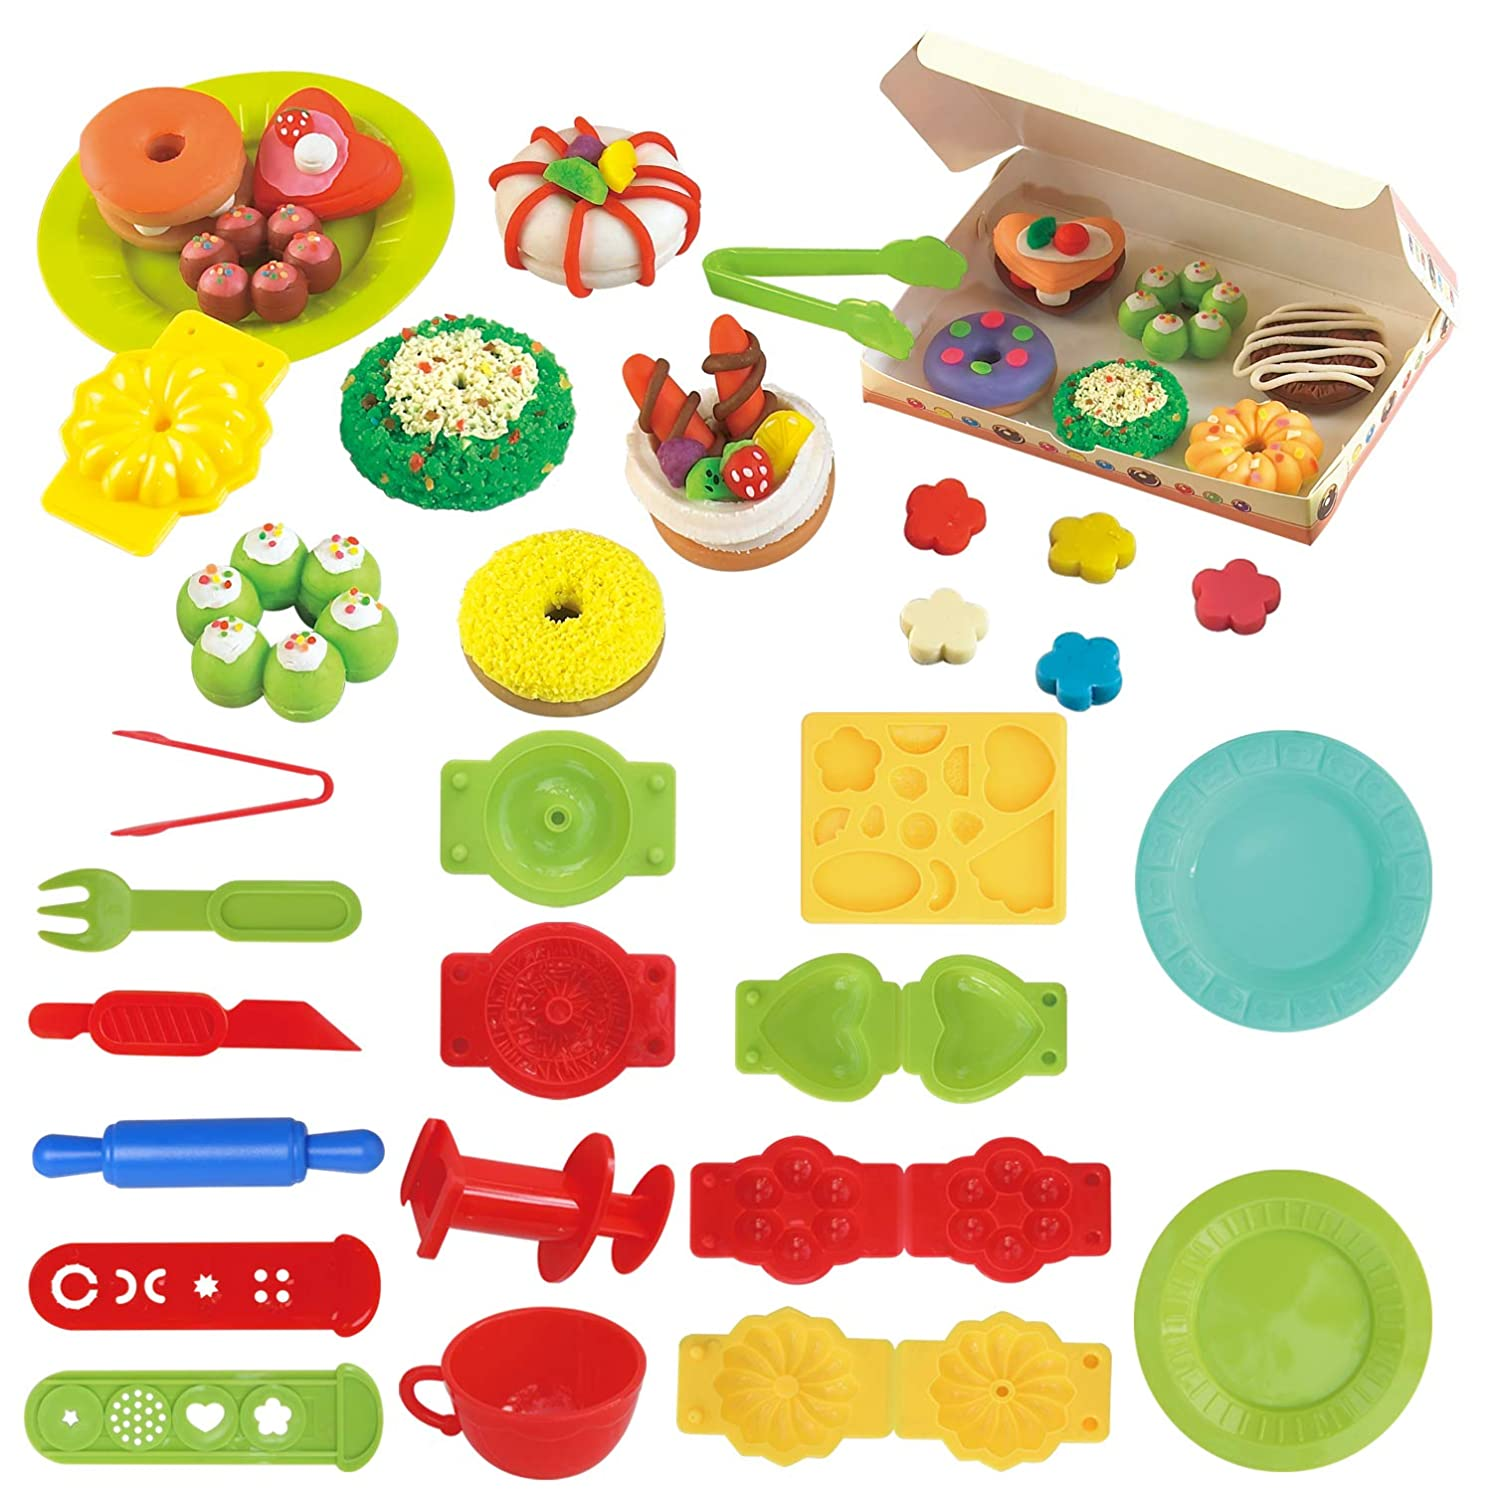 JHONG 3D Clay Dough nut Mold, Including 5 Dough nut molds, 8 Noodle molds, can be Used to Make Macaroni, 2 Plates, 1 Cup, Knives and Forks, and Other Small Tools